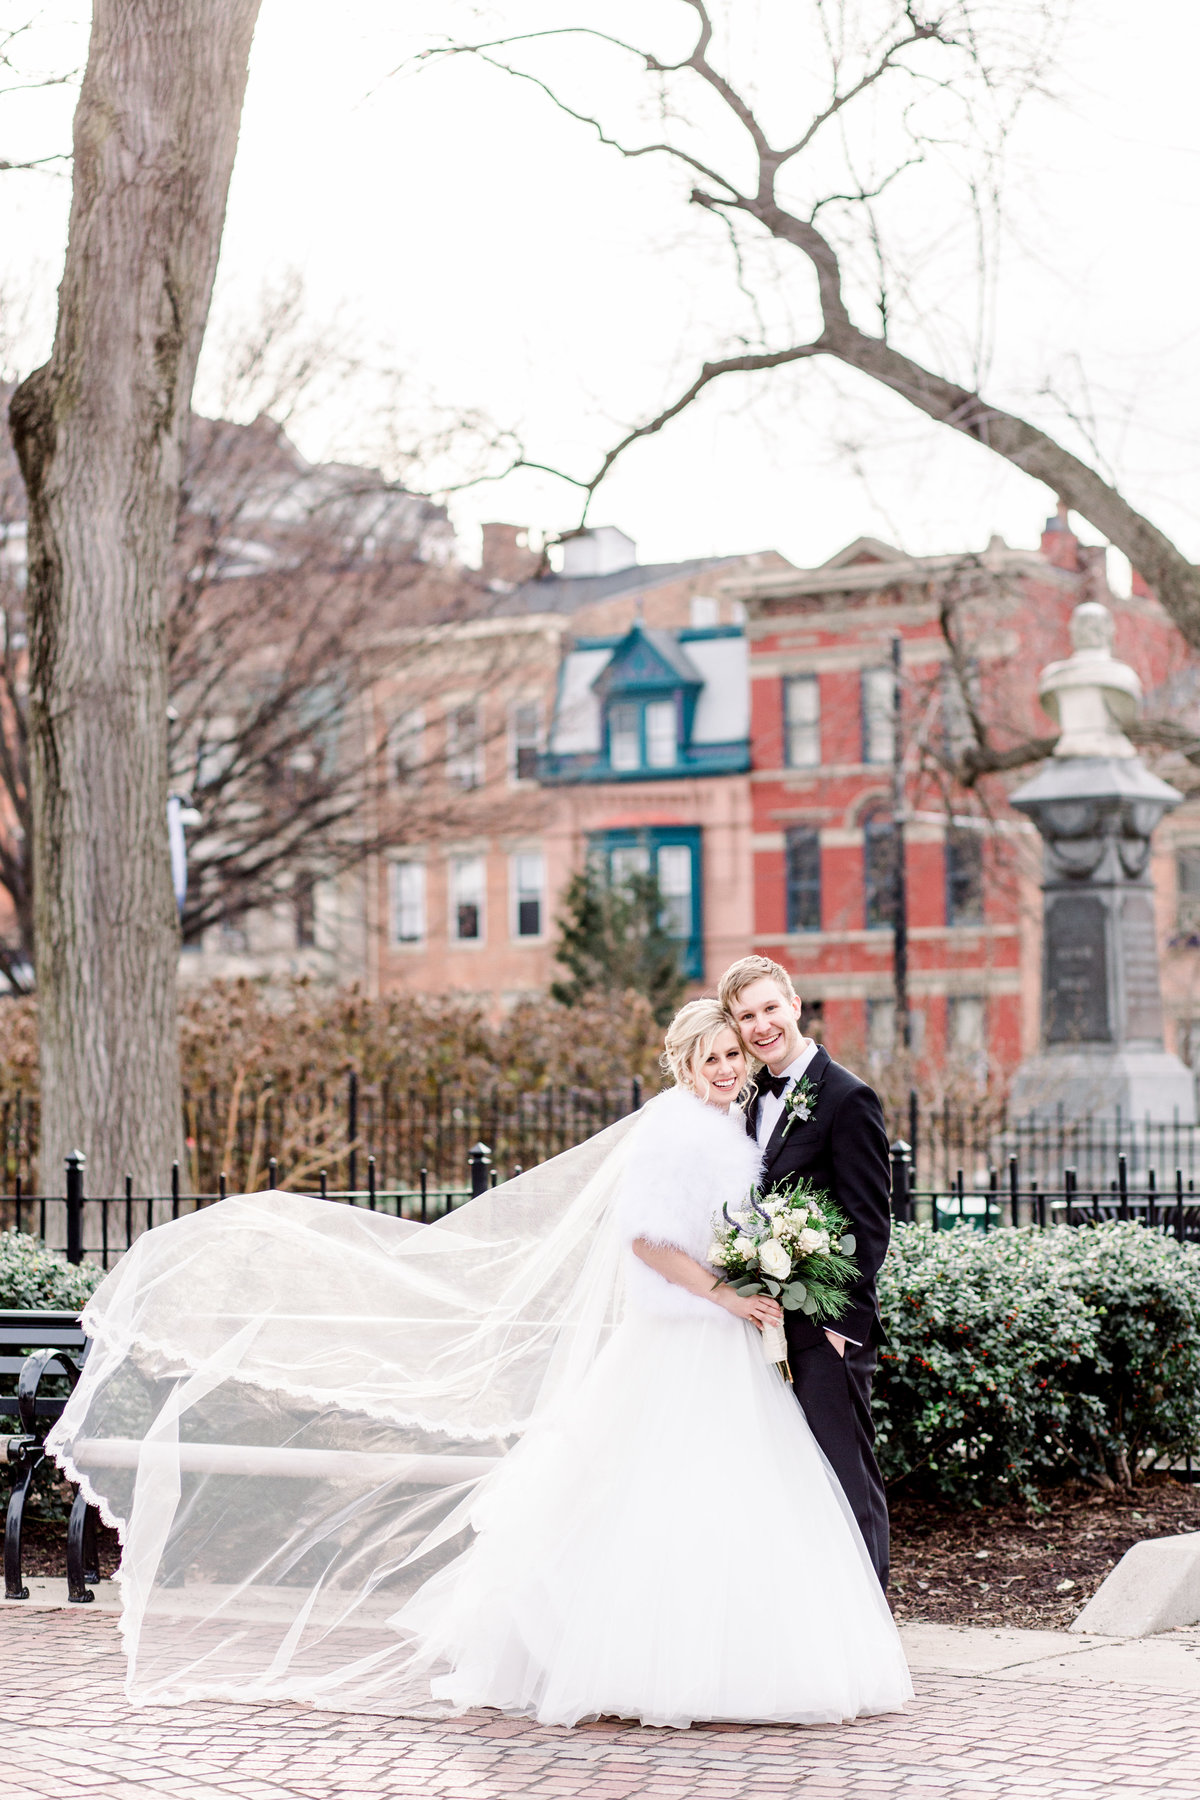 Cincinnati-Wedding-Transcept-Photographer-Over-the-Rhine027